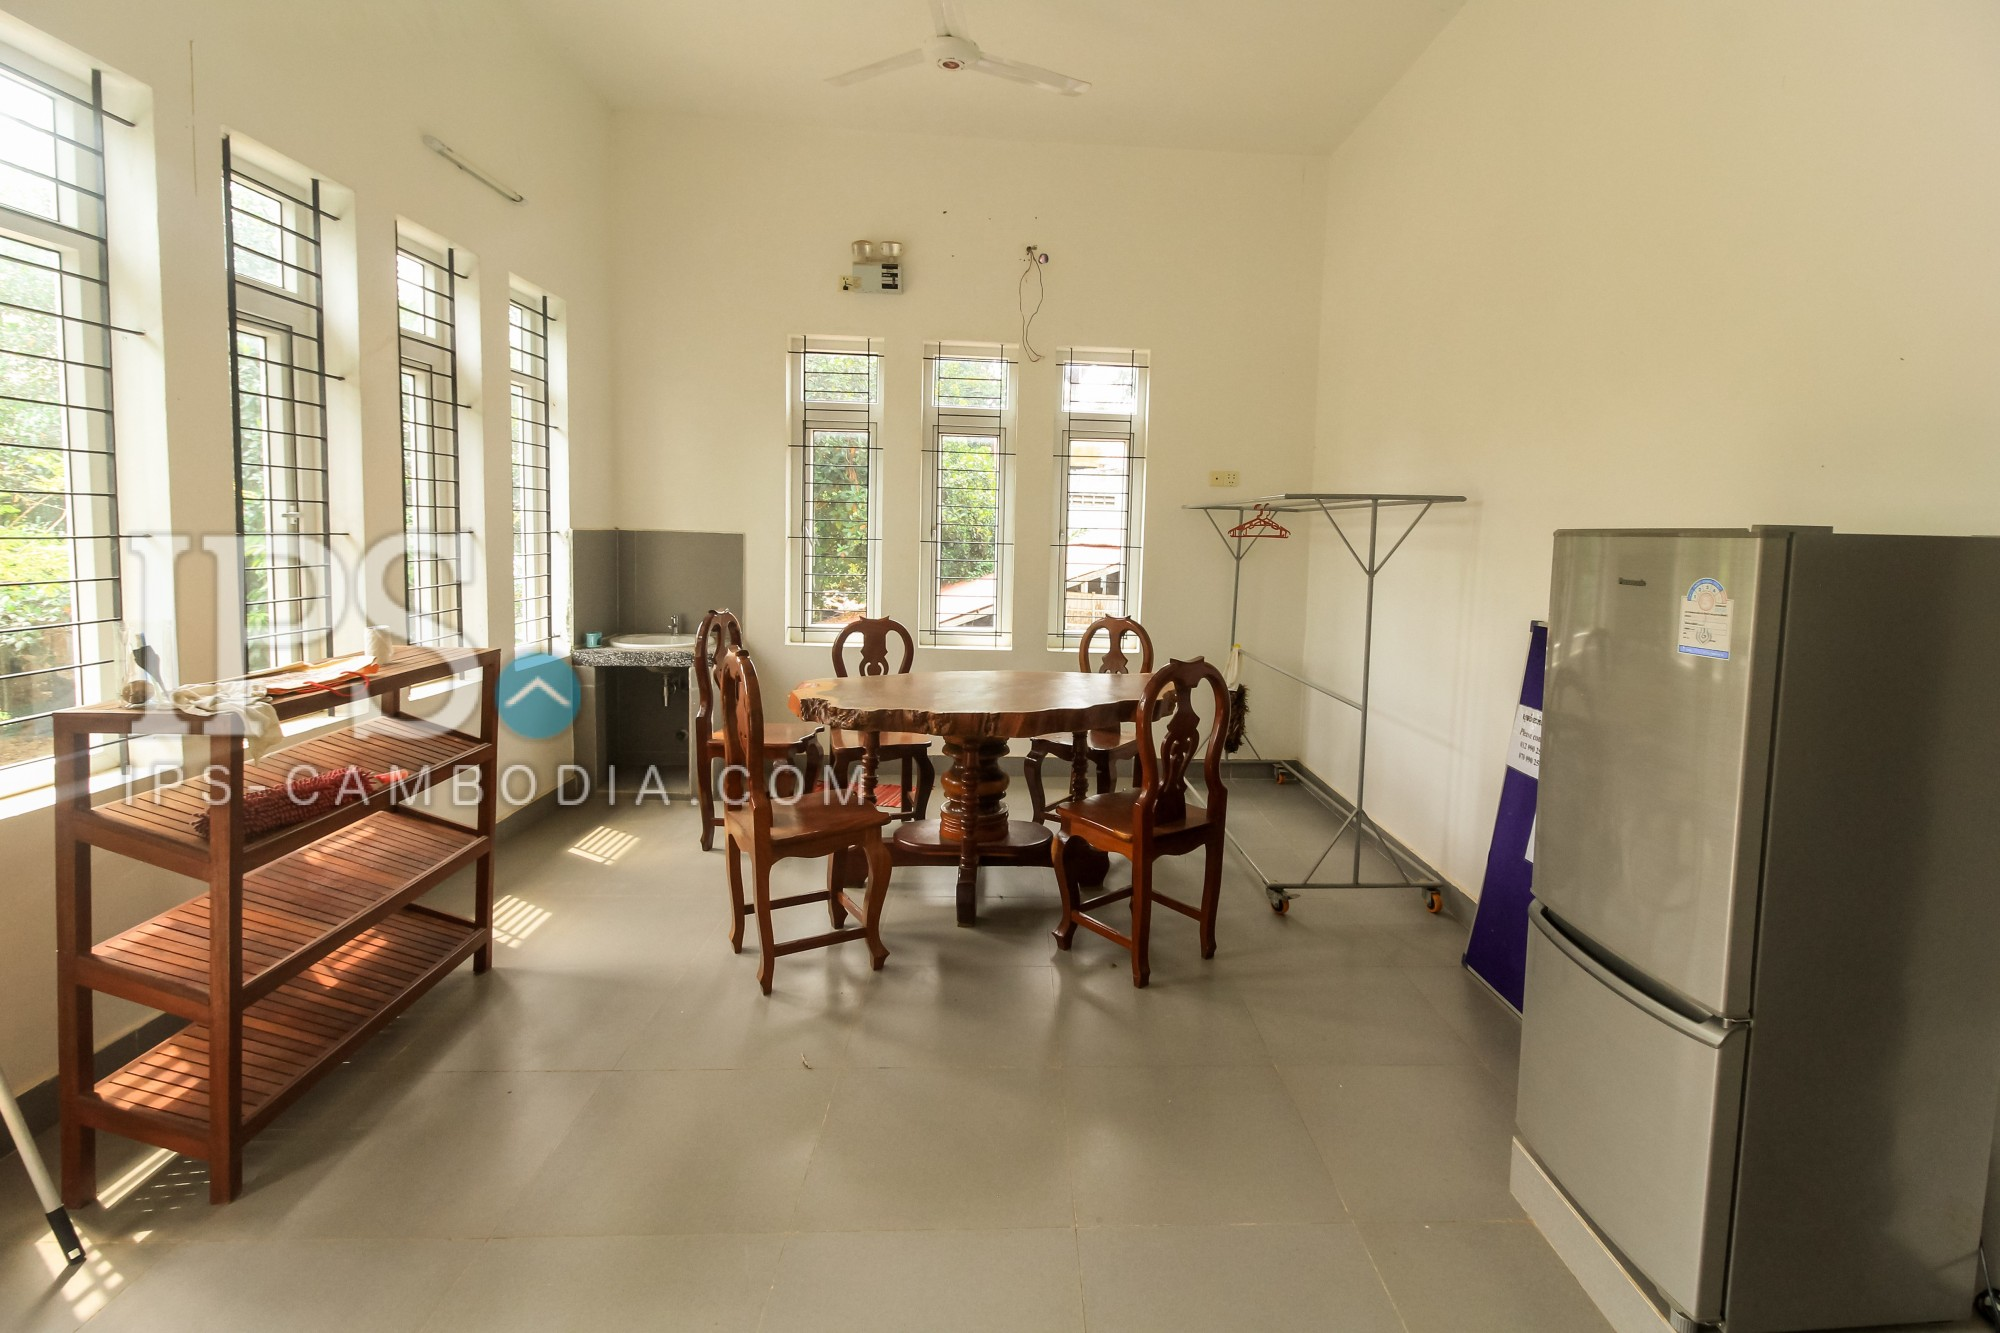 3 Bedroom Apartment for Rent - Siem Reap